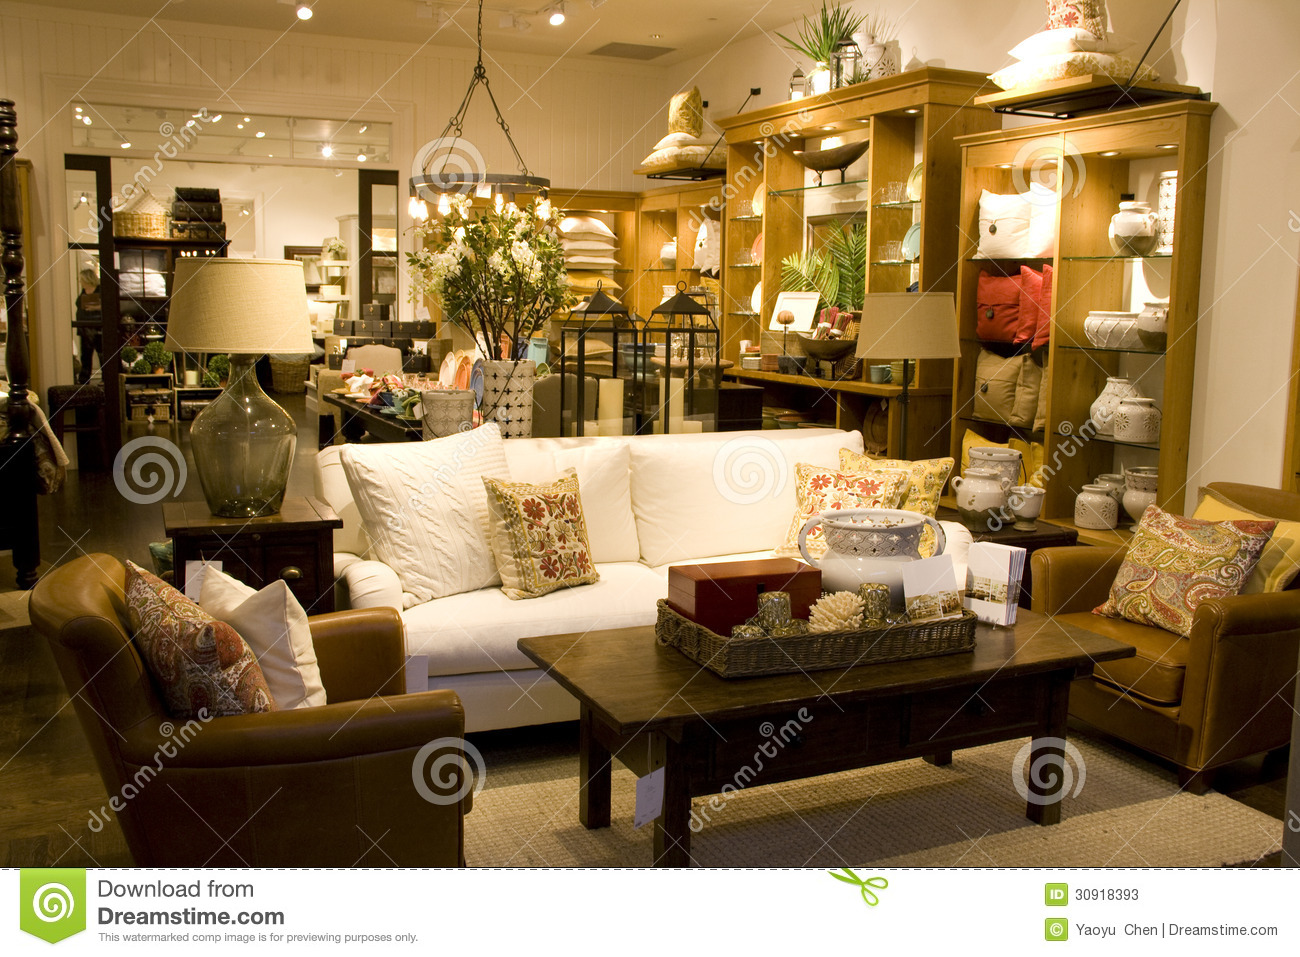 Furniture And Home Decor Store Furniture And Home Decor Store Stock Photos Image 30918393